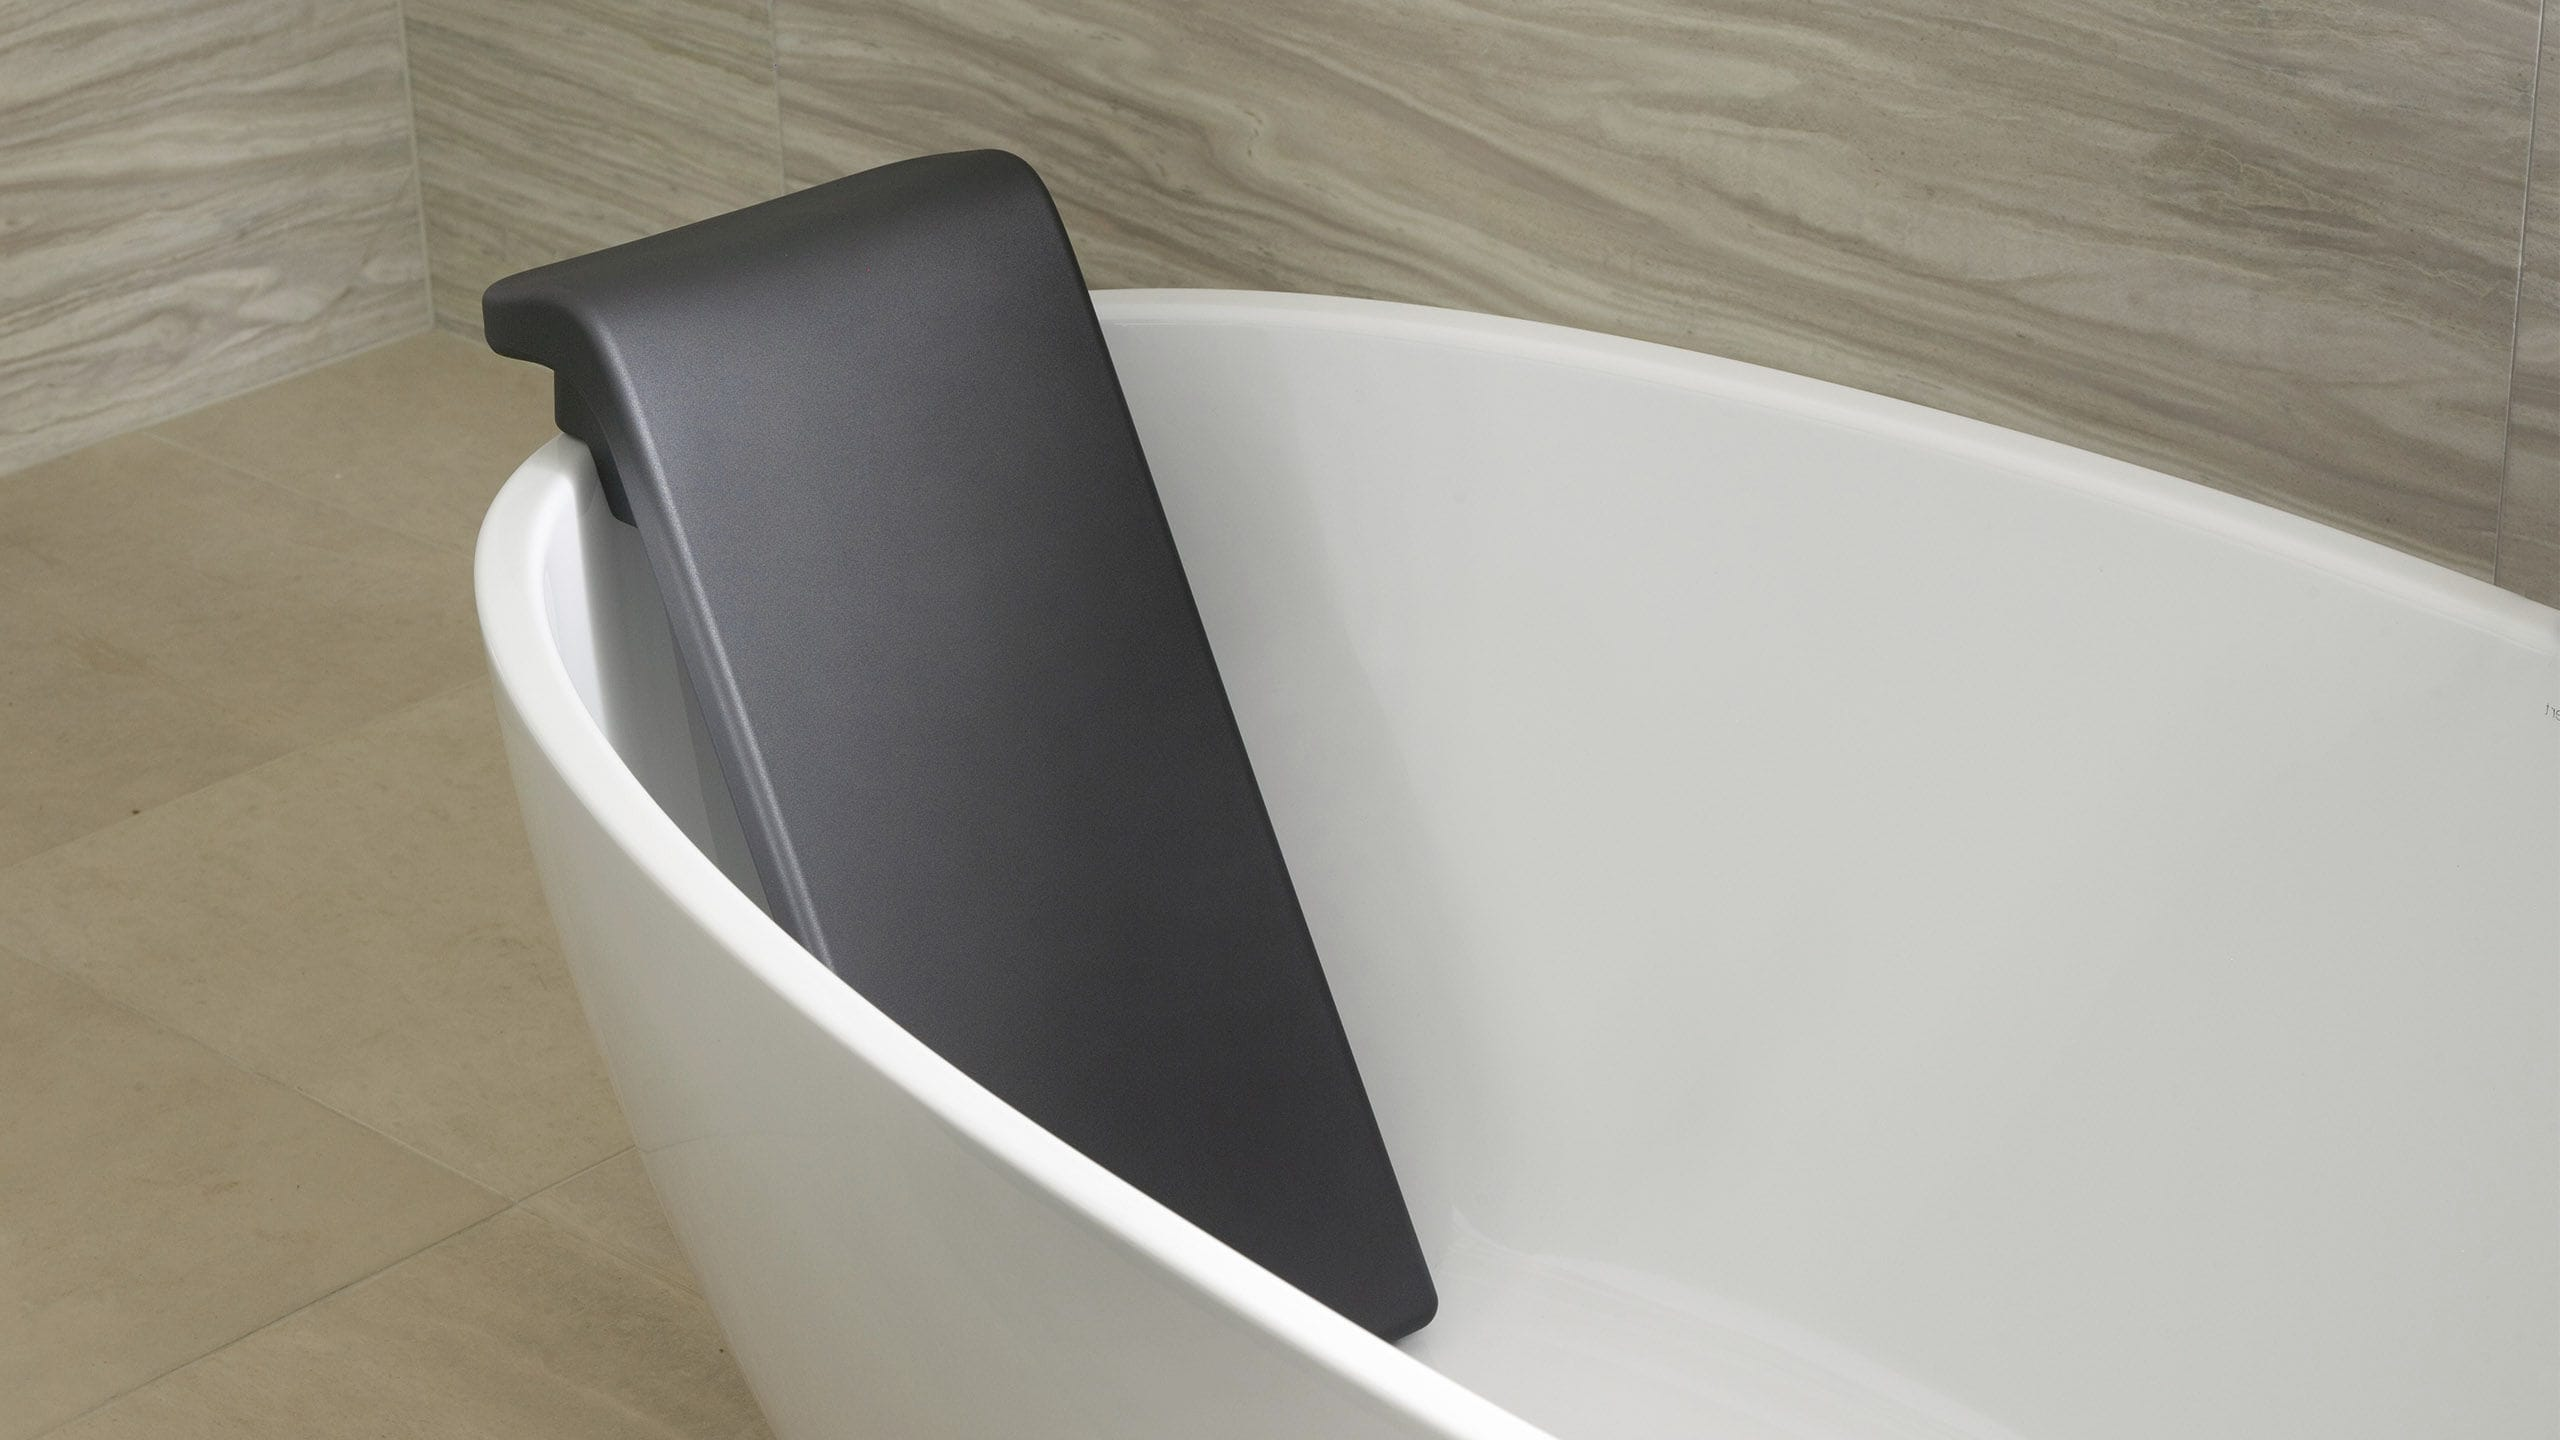 Bathtub backrest headrest -  Bathroom Backrest Barcelona Victoria Albert